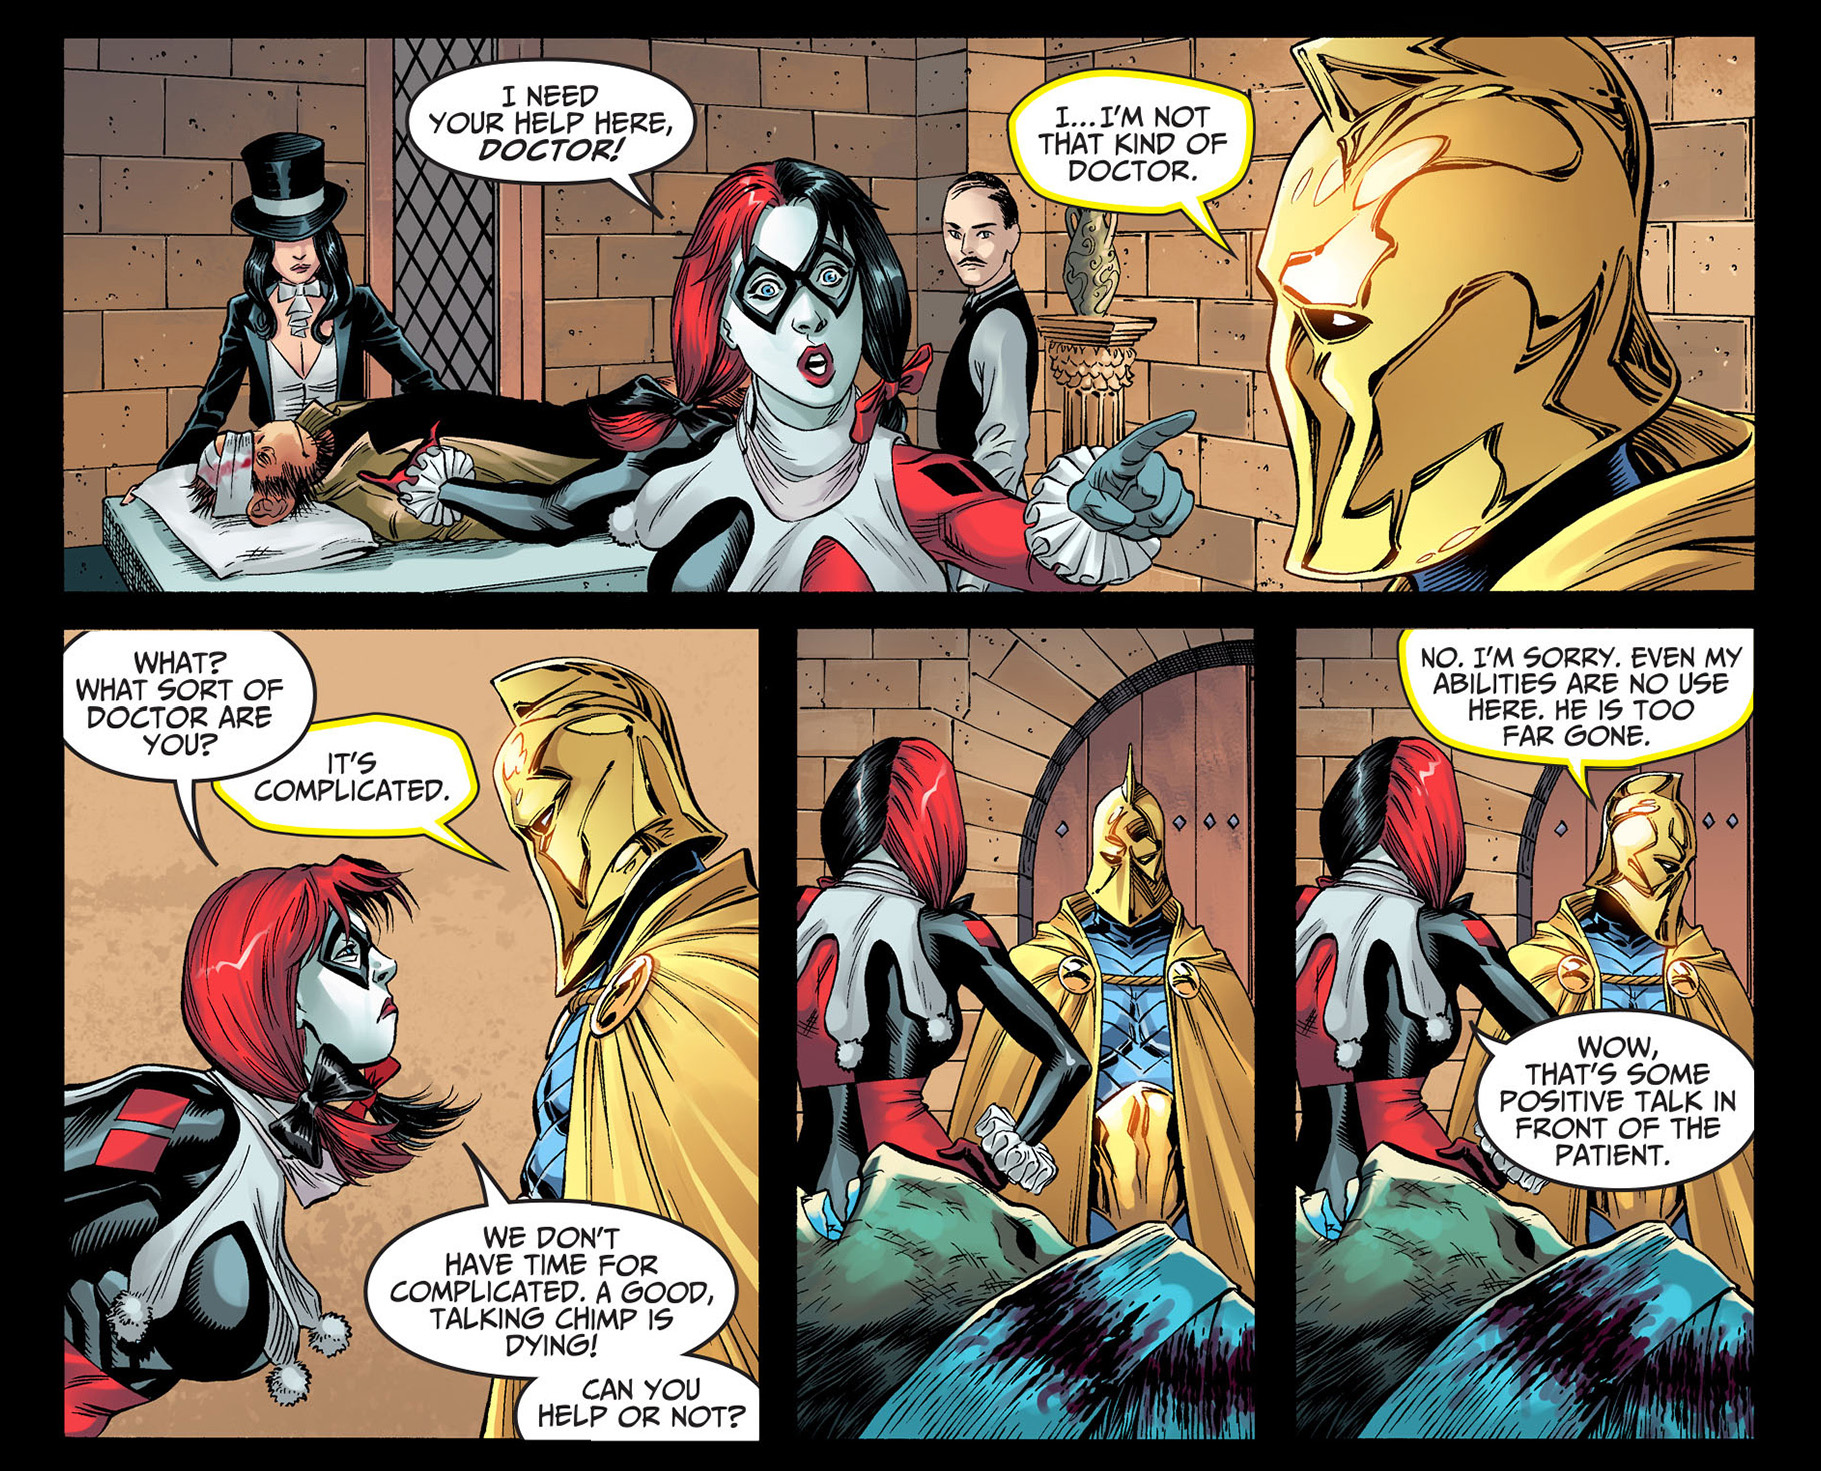 harley quinn scolds doctor fate 4